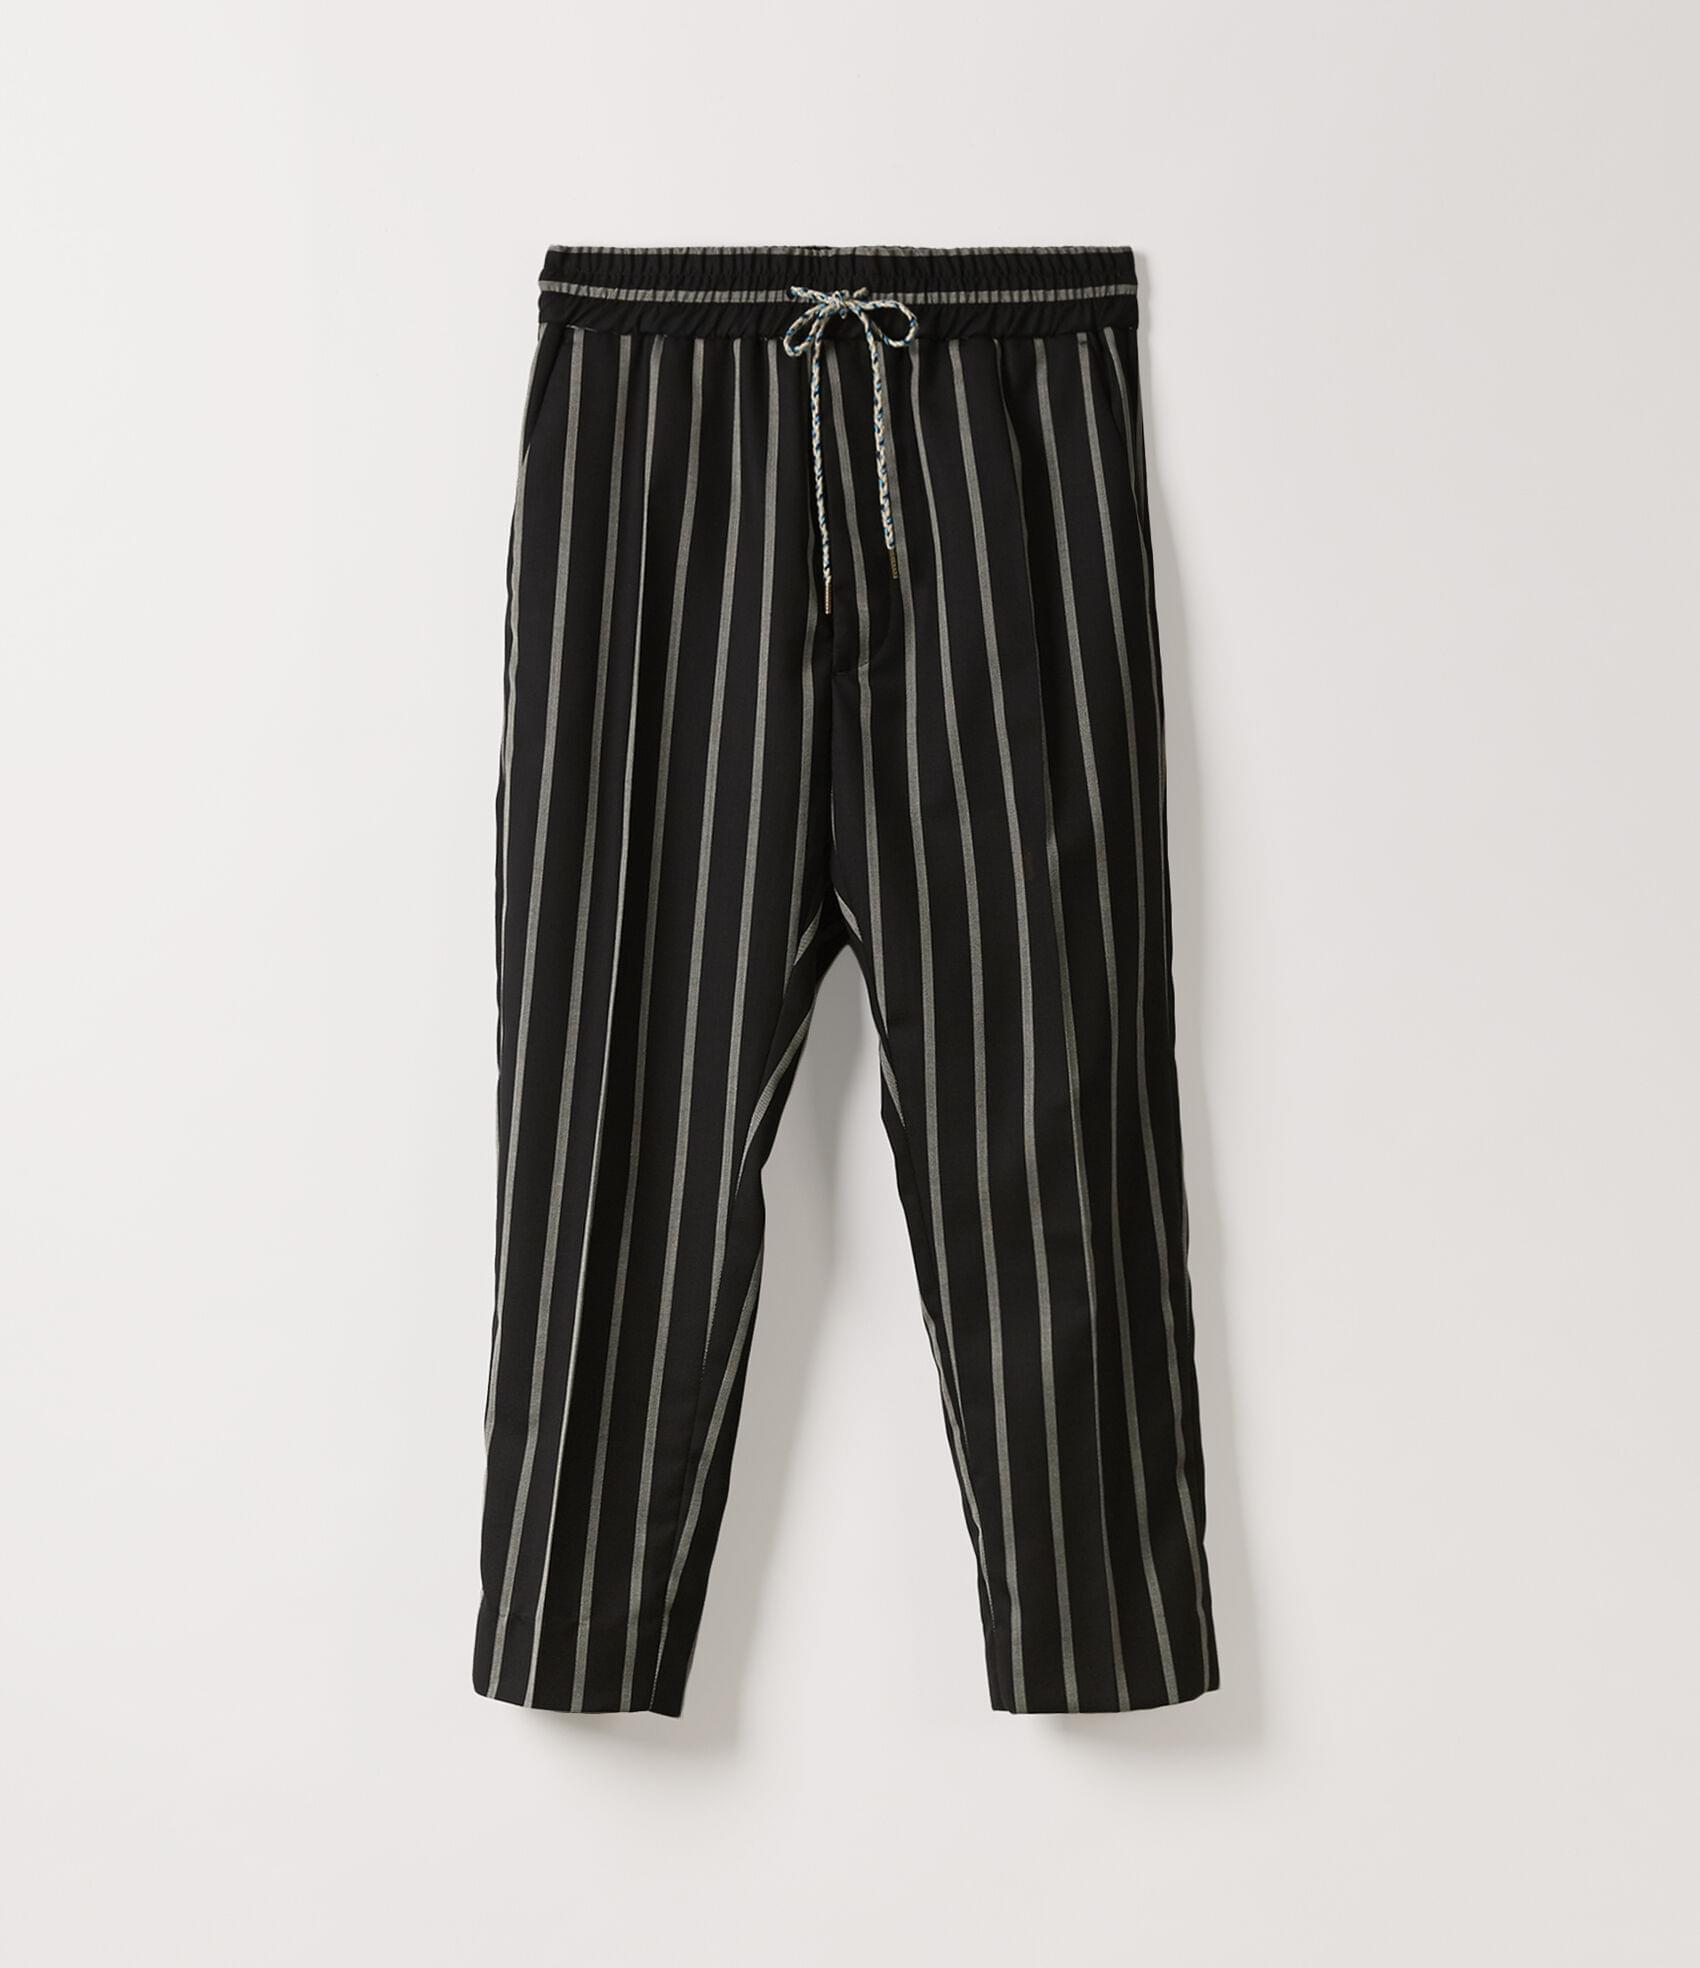 Vivienne Westwood ELASTIC CROPPED GEORGE TROUSERS BLACK/WHITE ST